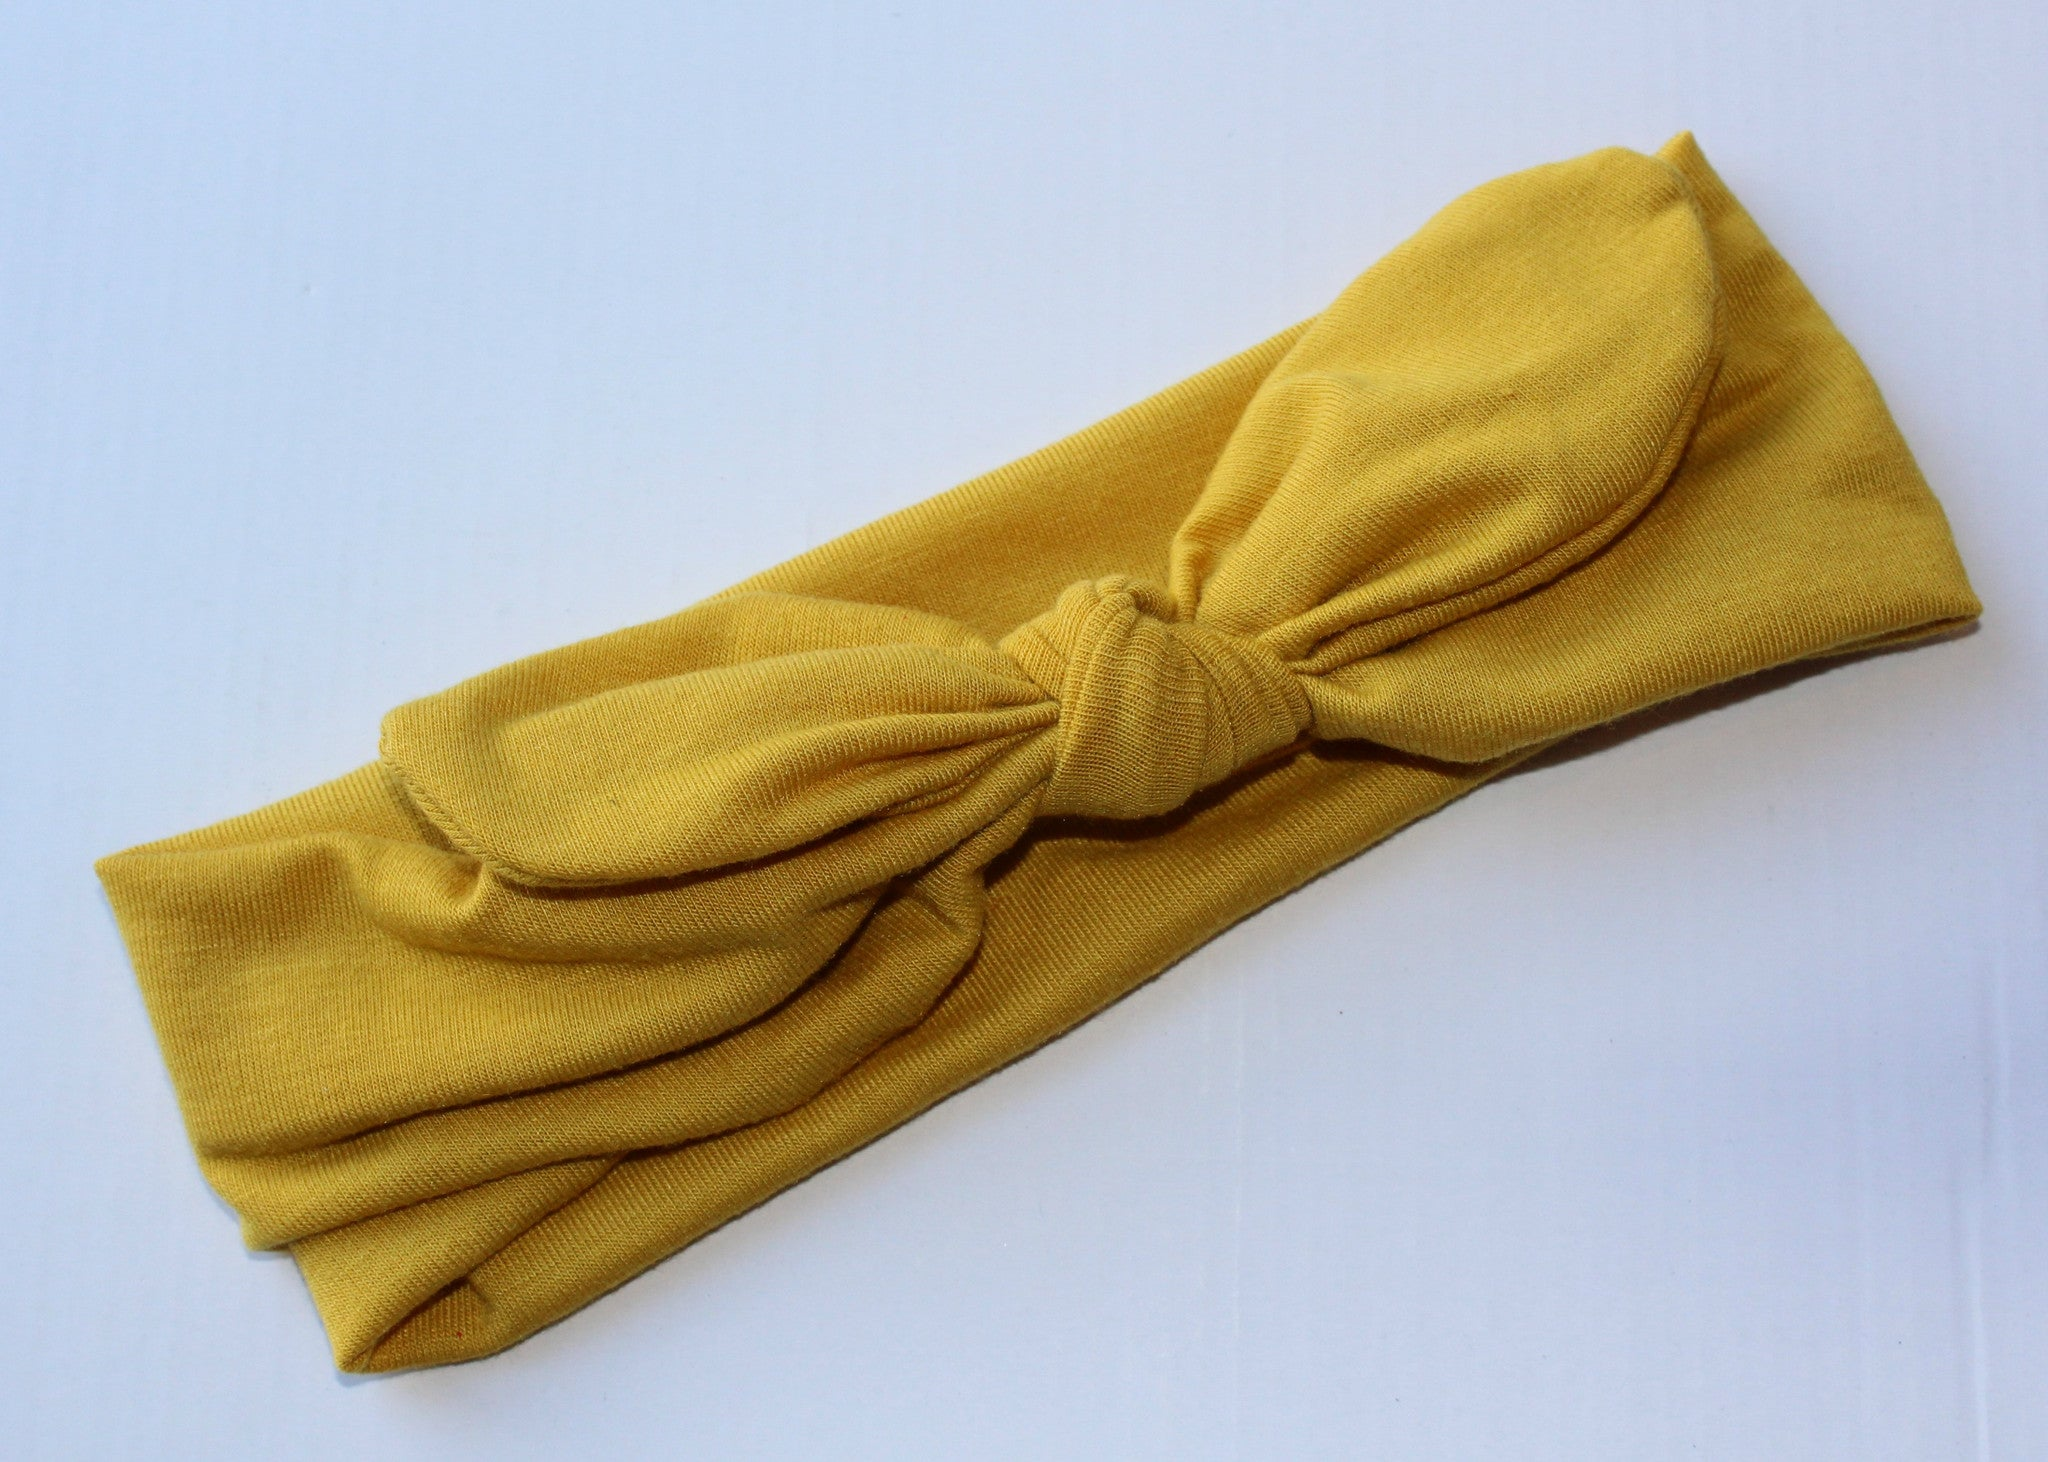 Knot Headband in Mustard- Regular - shabbyflowers.com